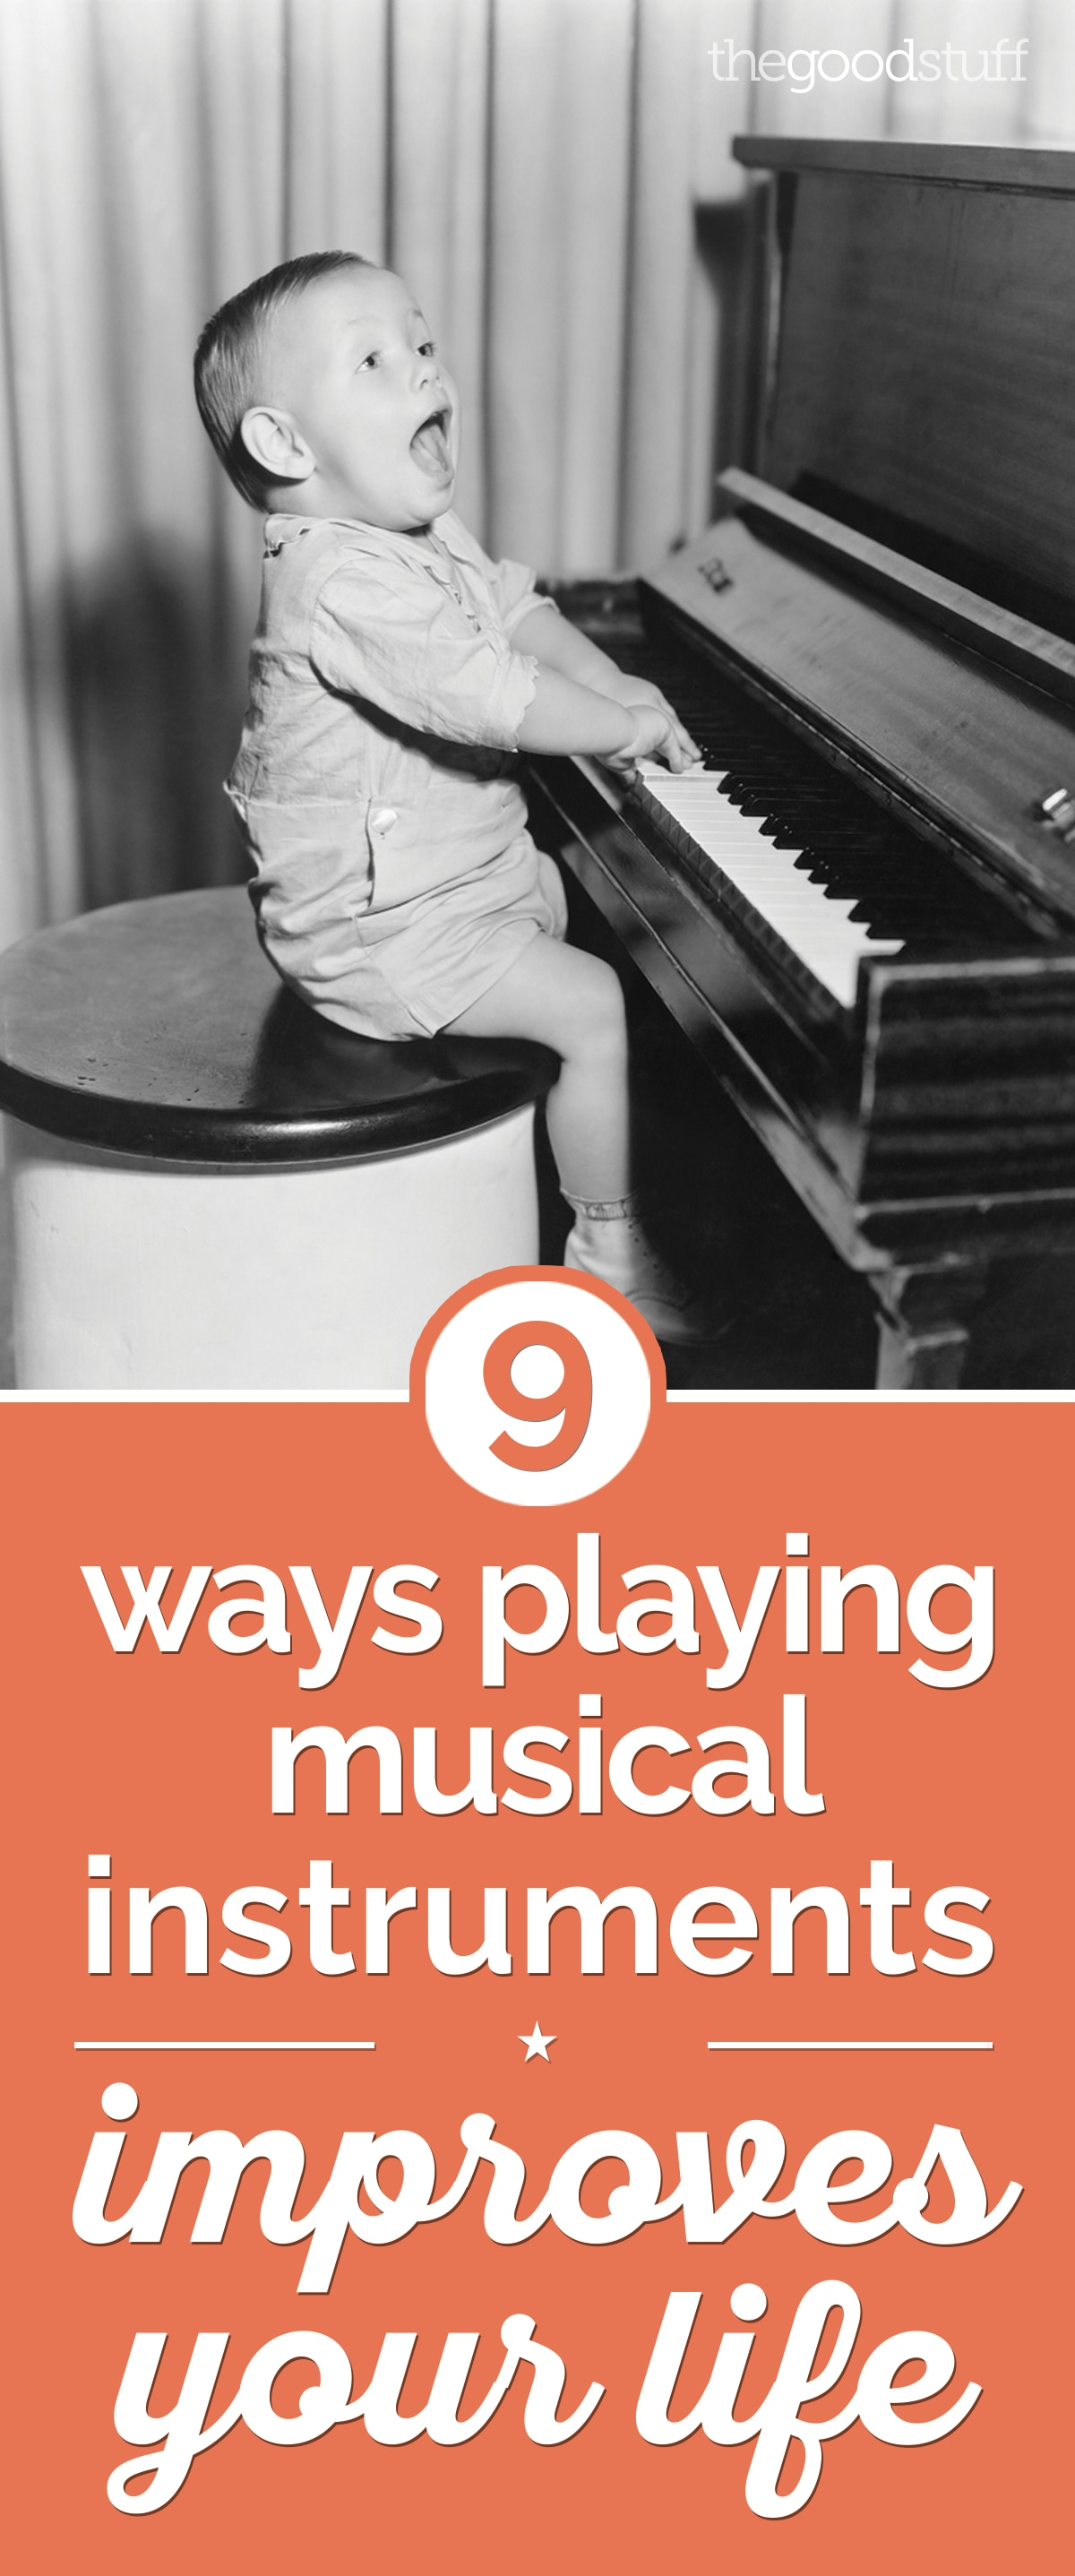 9 Ways Playing Musical Instruments Improves Your Life | thegoodstuff